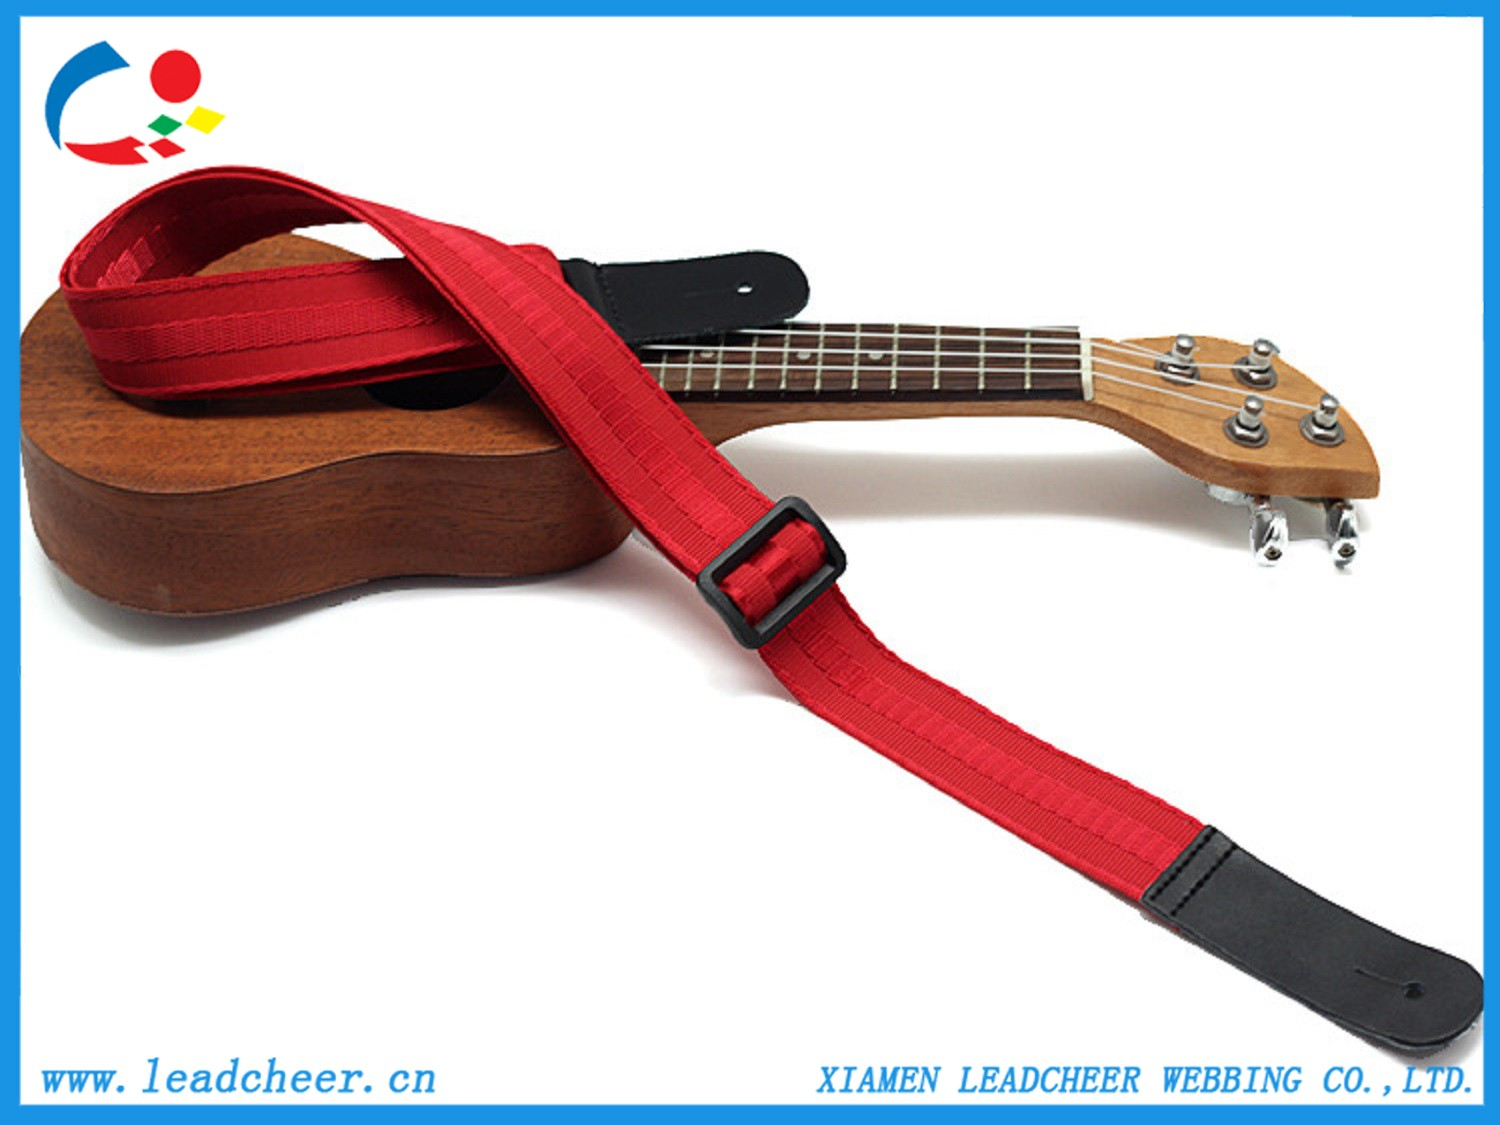 High quality High Quality Comfortable Nylon Guitar Ukulele Belt with Leather Ends Quotes,China High Quality Comfortable Nylon Guitar Ukulele Belt with Leather Ends Factory,High Quality Comfortable Nylon Guitar Ukulele Belt with Leather Ends Purchasing